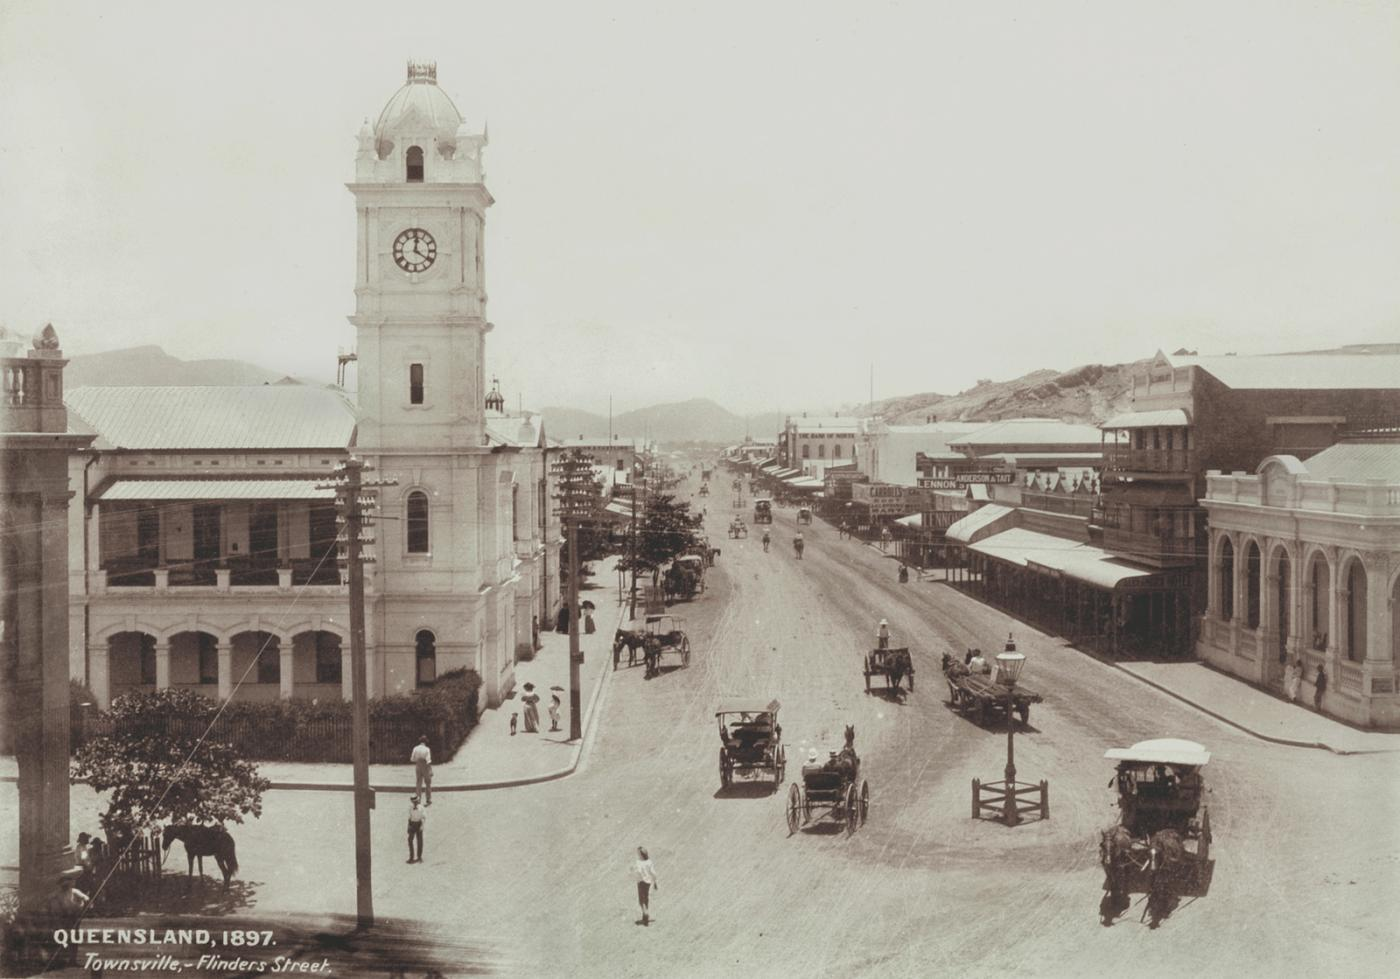 View of a grand open streets of Townsville seen in the 1890s